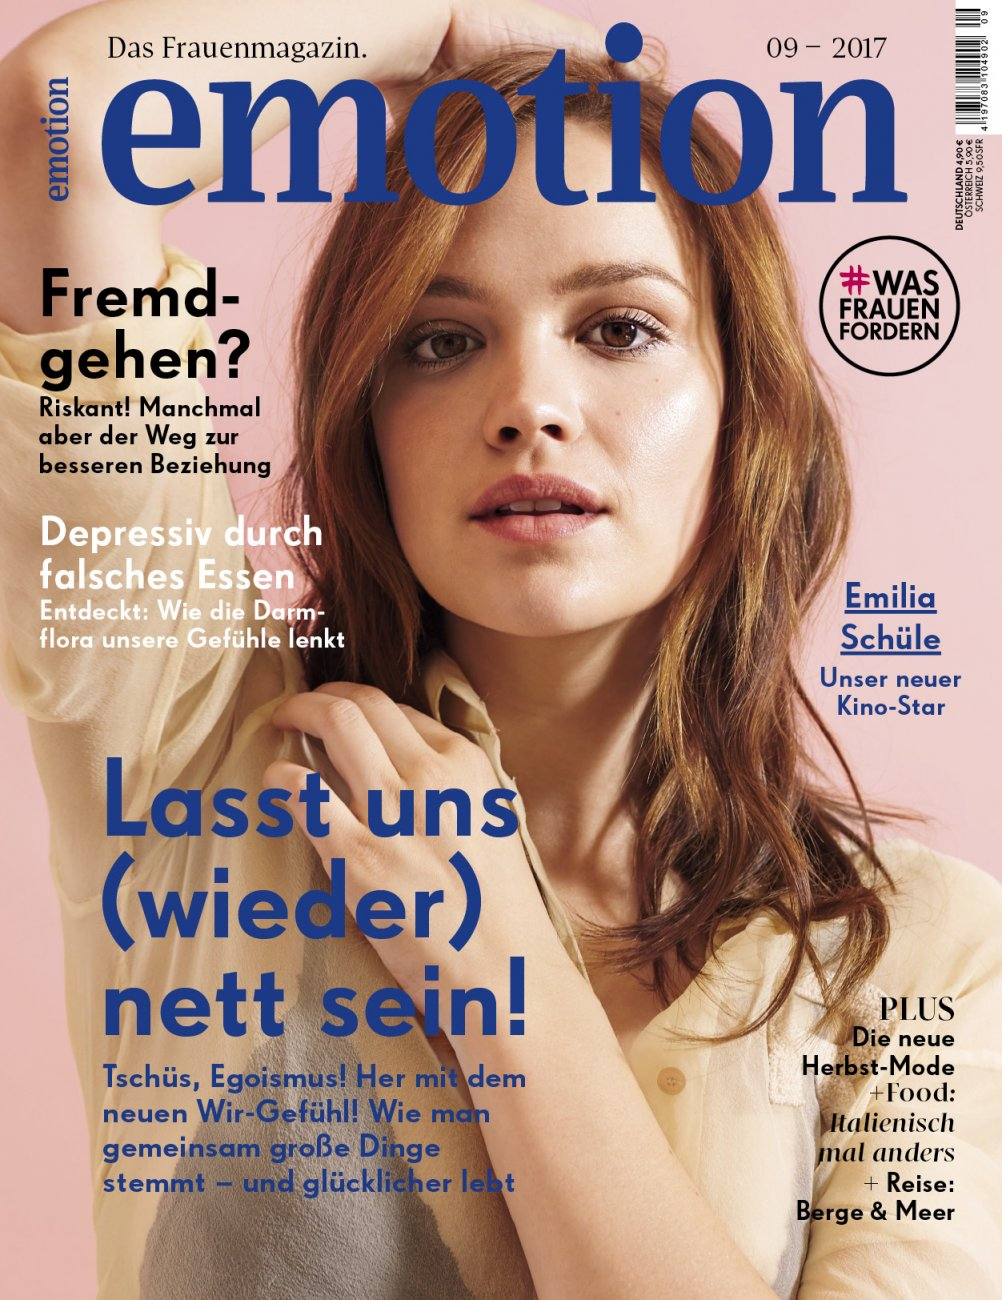 Emotion / September 2017 / Emotion Das Frauenmagazin